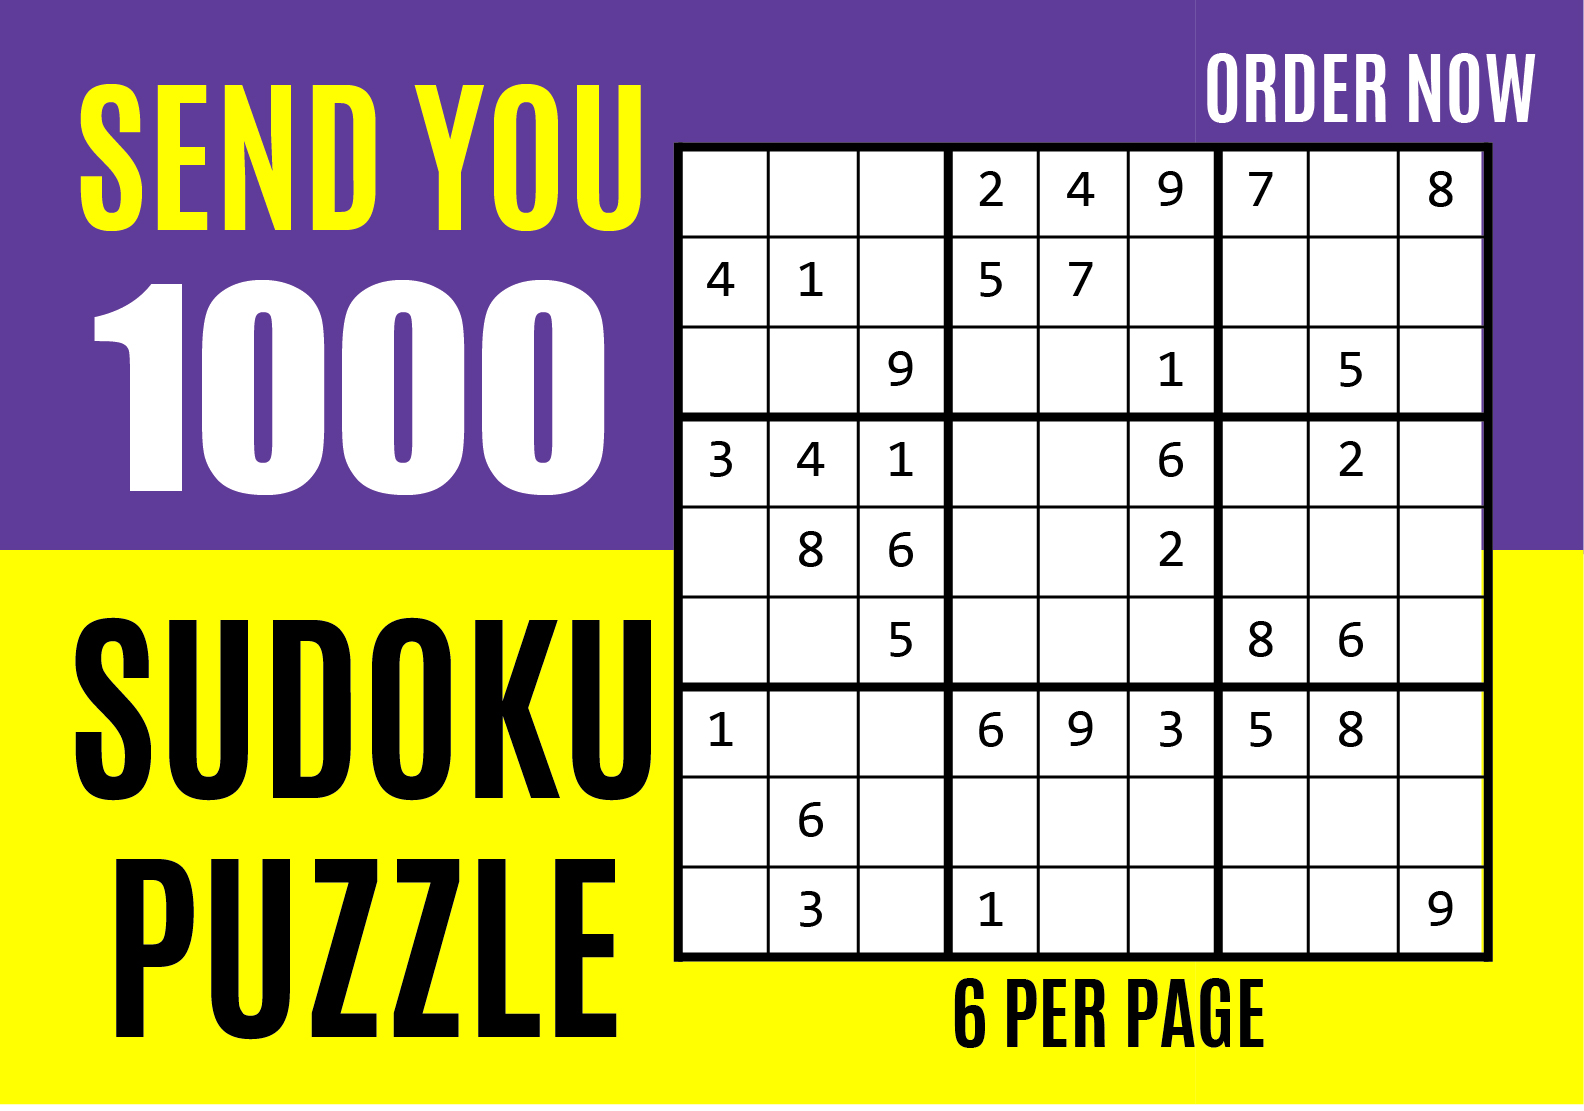 Send you 1000 sudoku puzzles with solutions